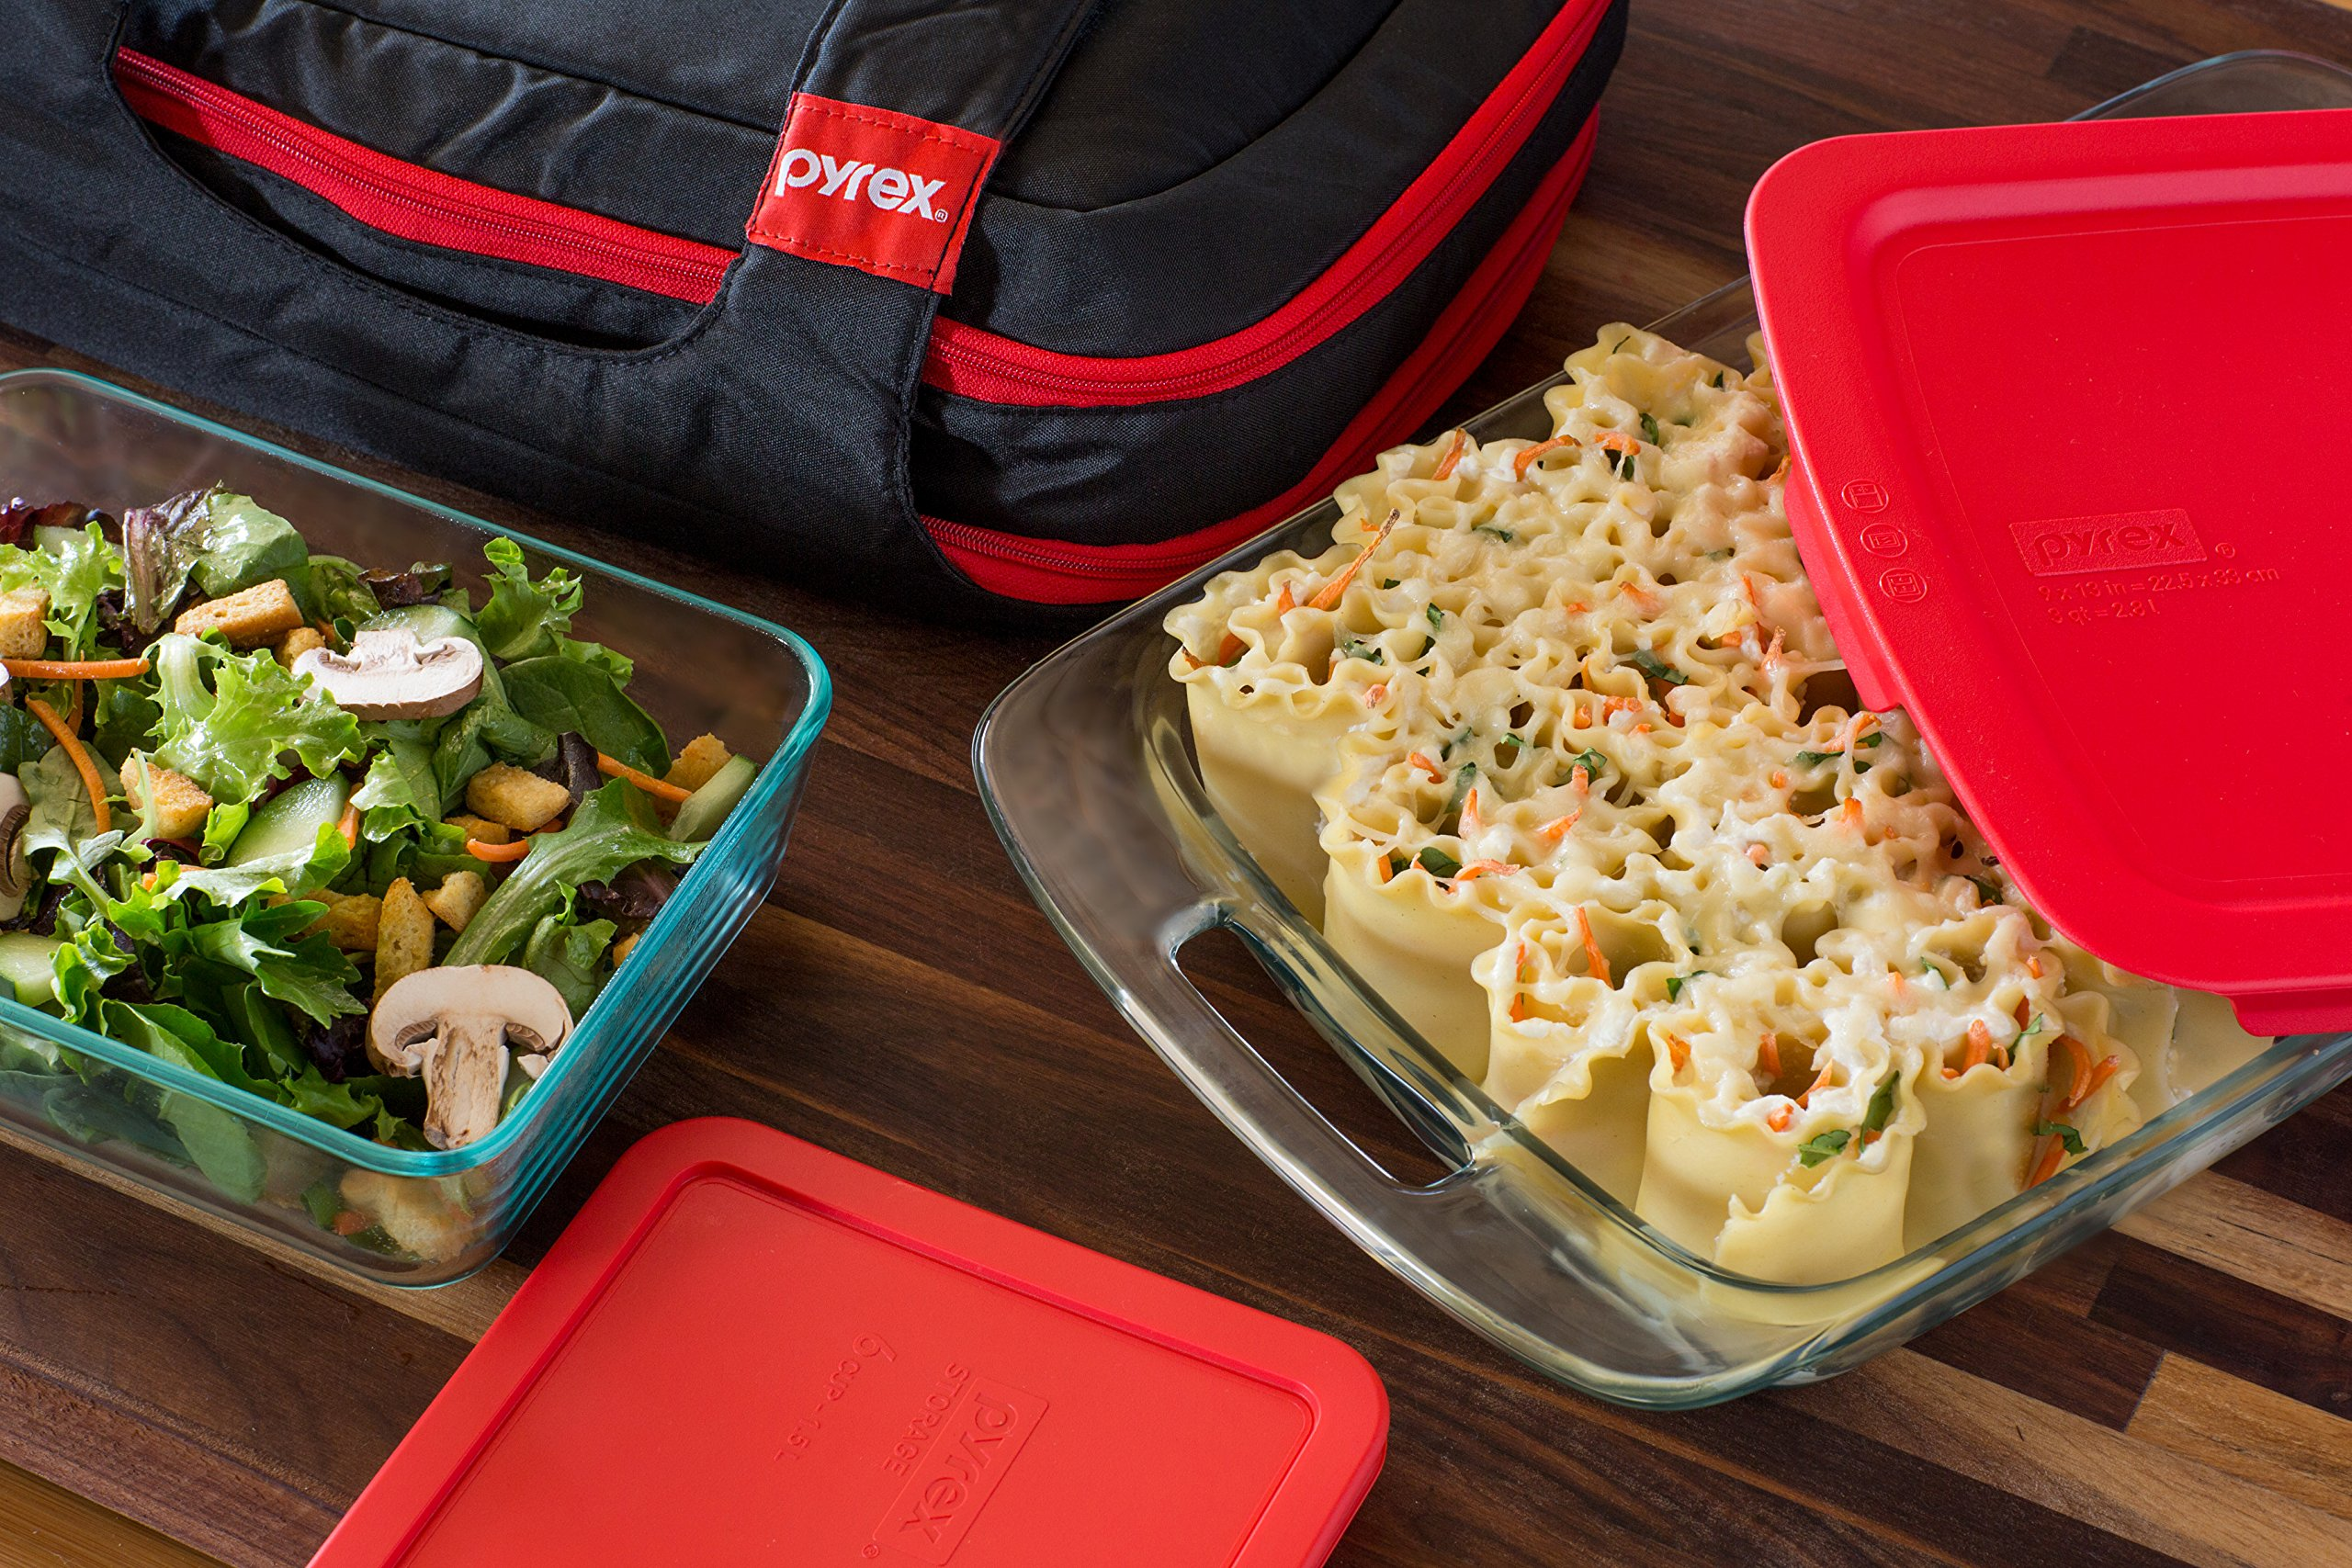 Pyrex Portables Glass Bakeware and Food Storage Set (Black Carrier, 9-Piece Double Decker, BPA-free) by Pyrex (Image #3)